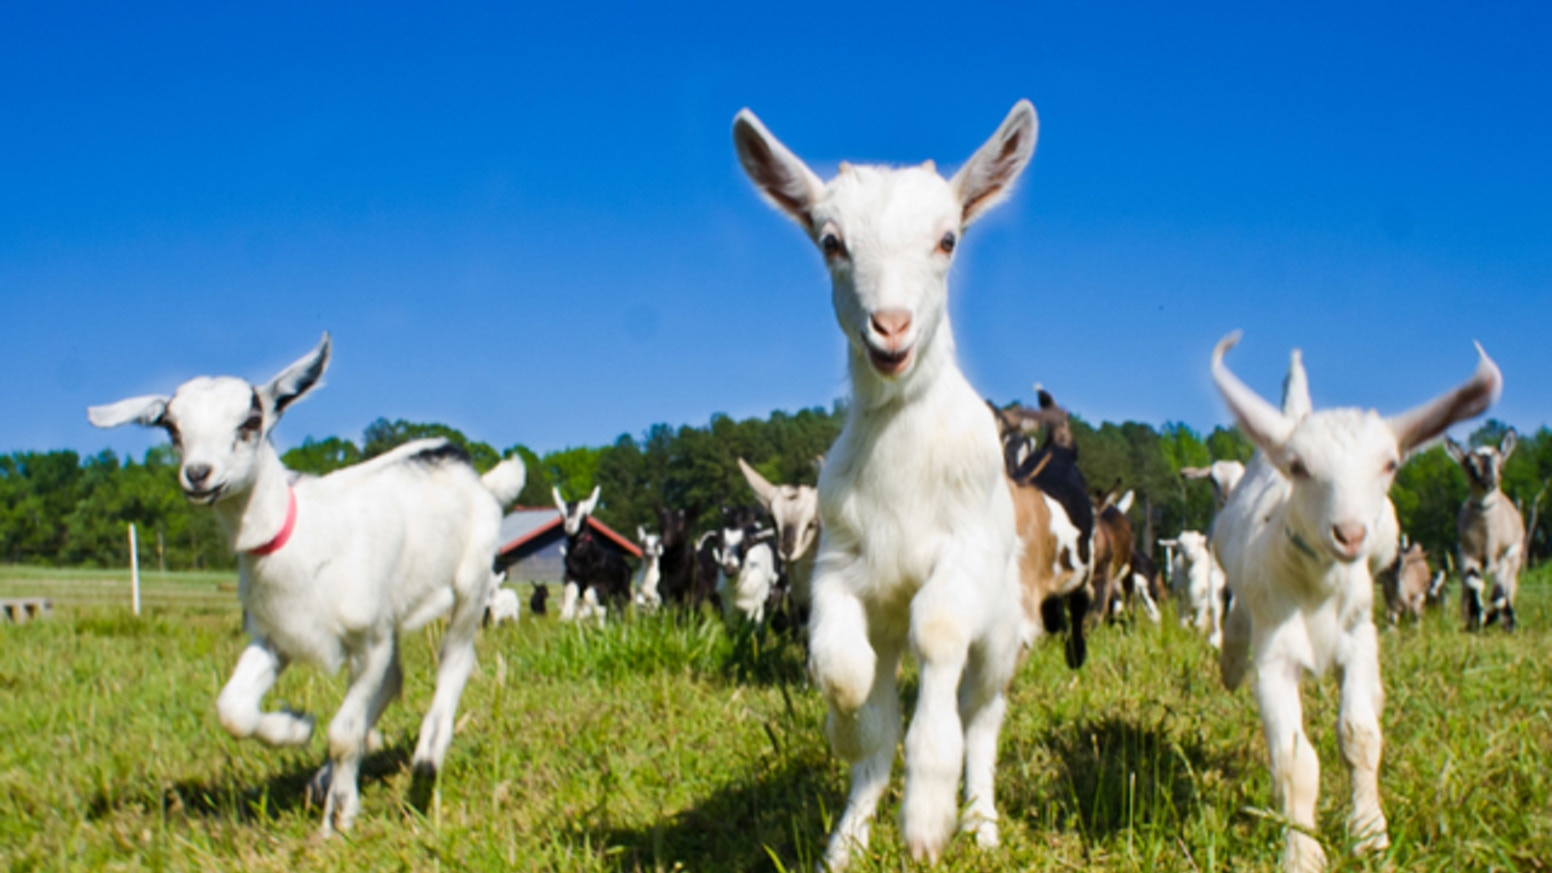 Artisanal Cheese + Beloved Goats = Stronger Community by